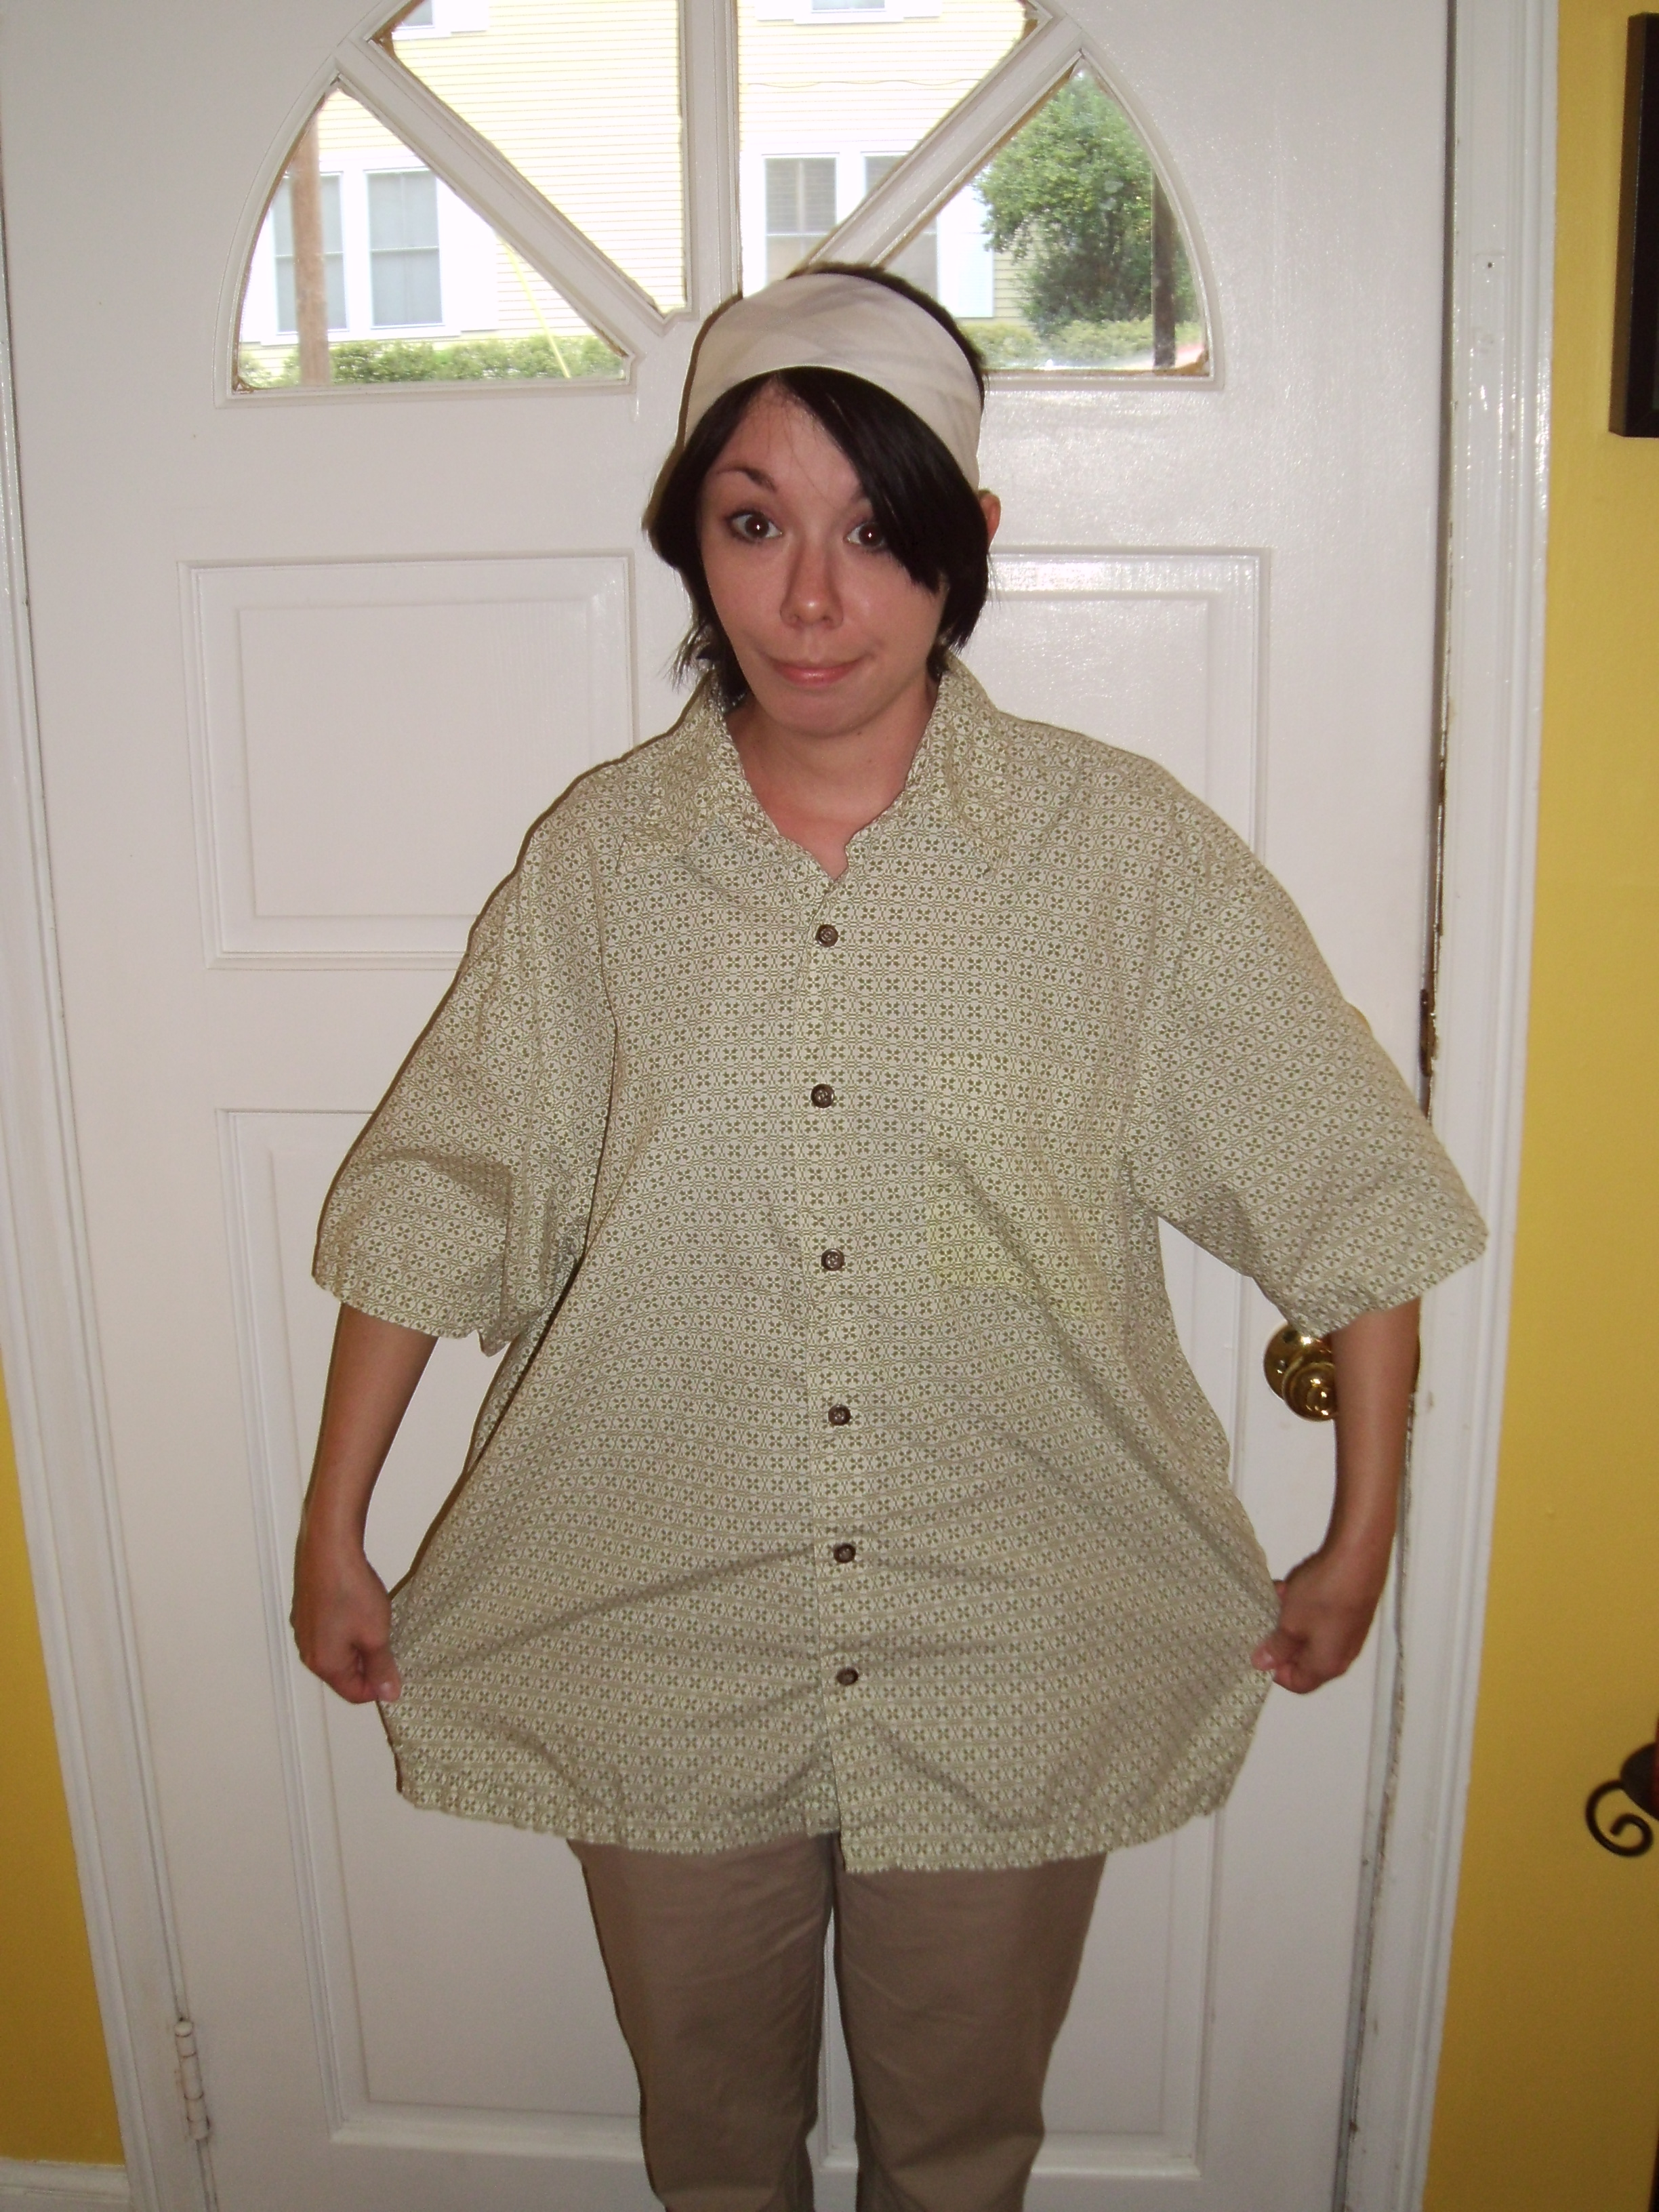 Day 36:  Shirt is Skirt 2